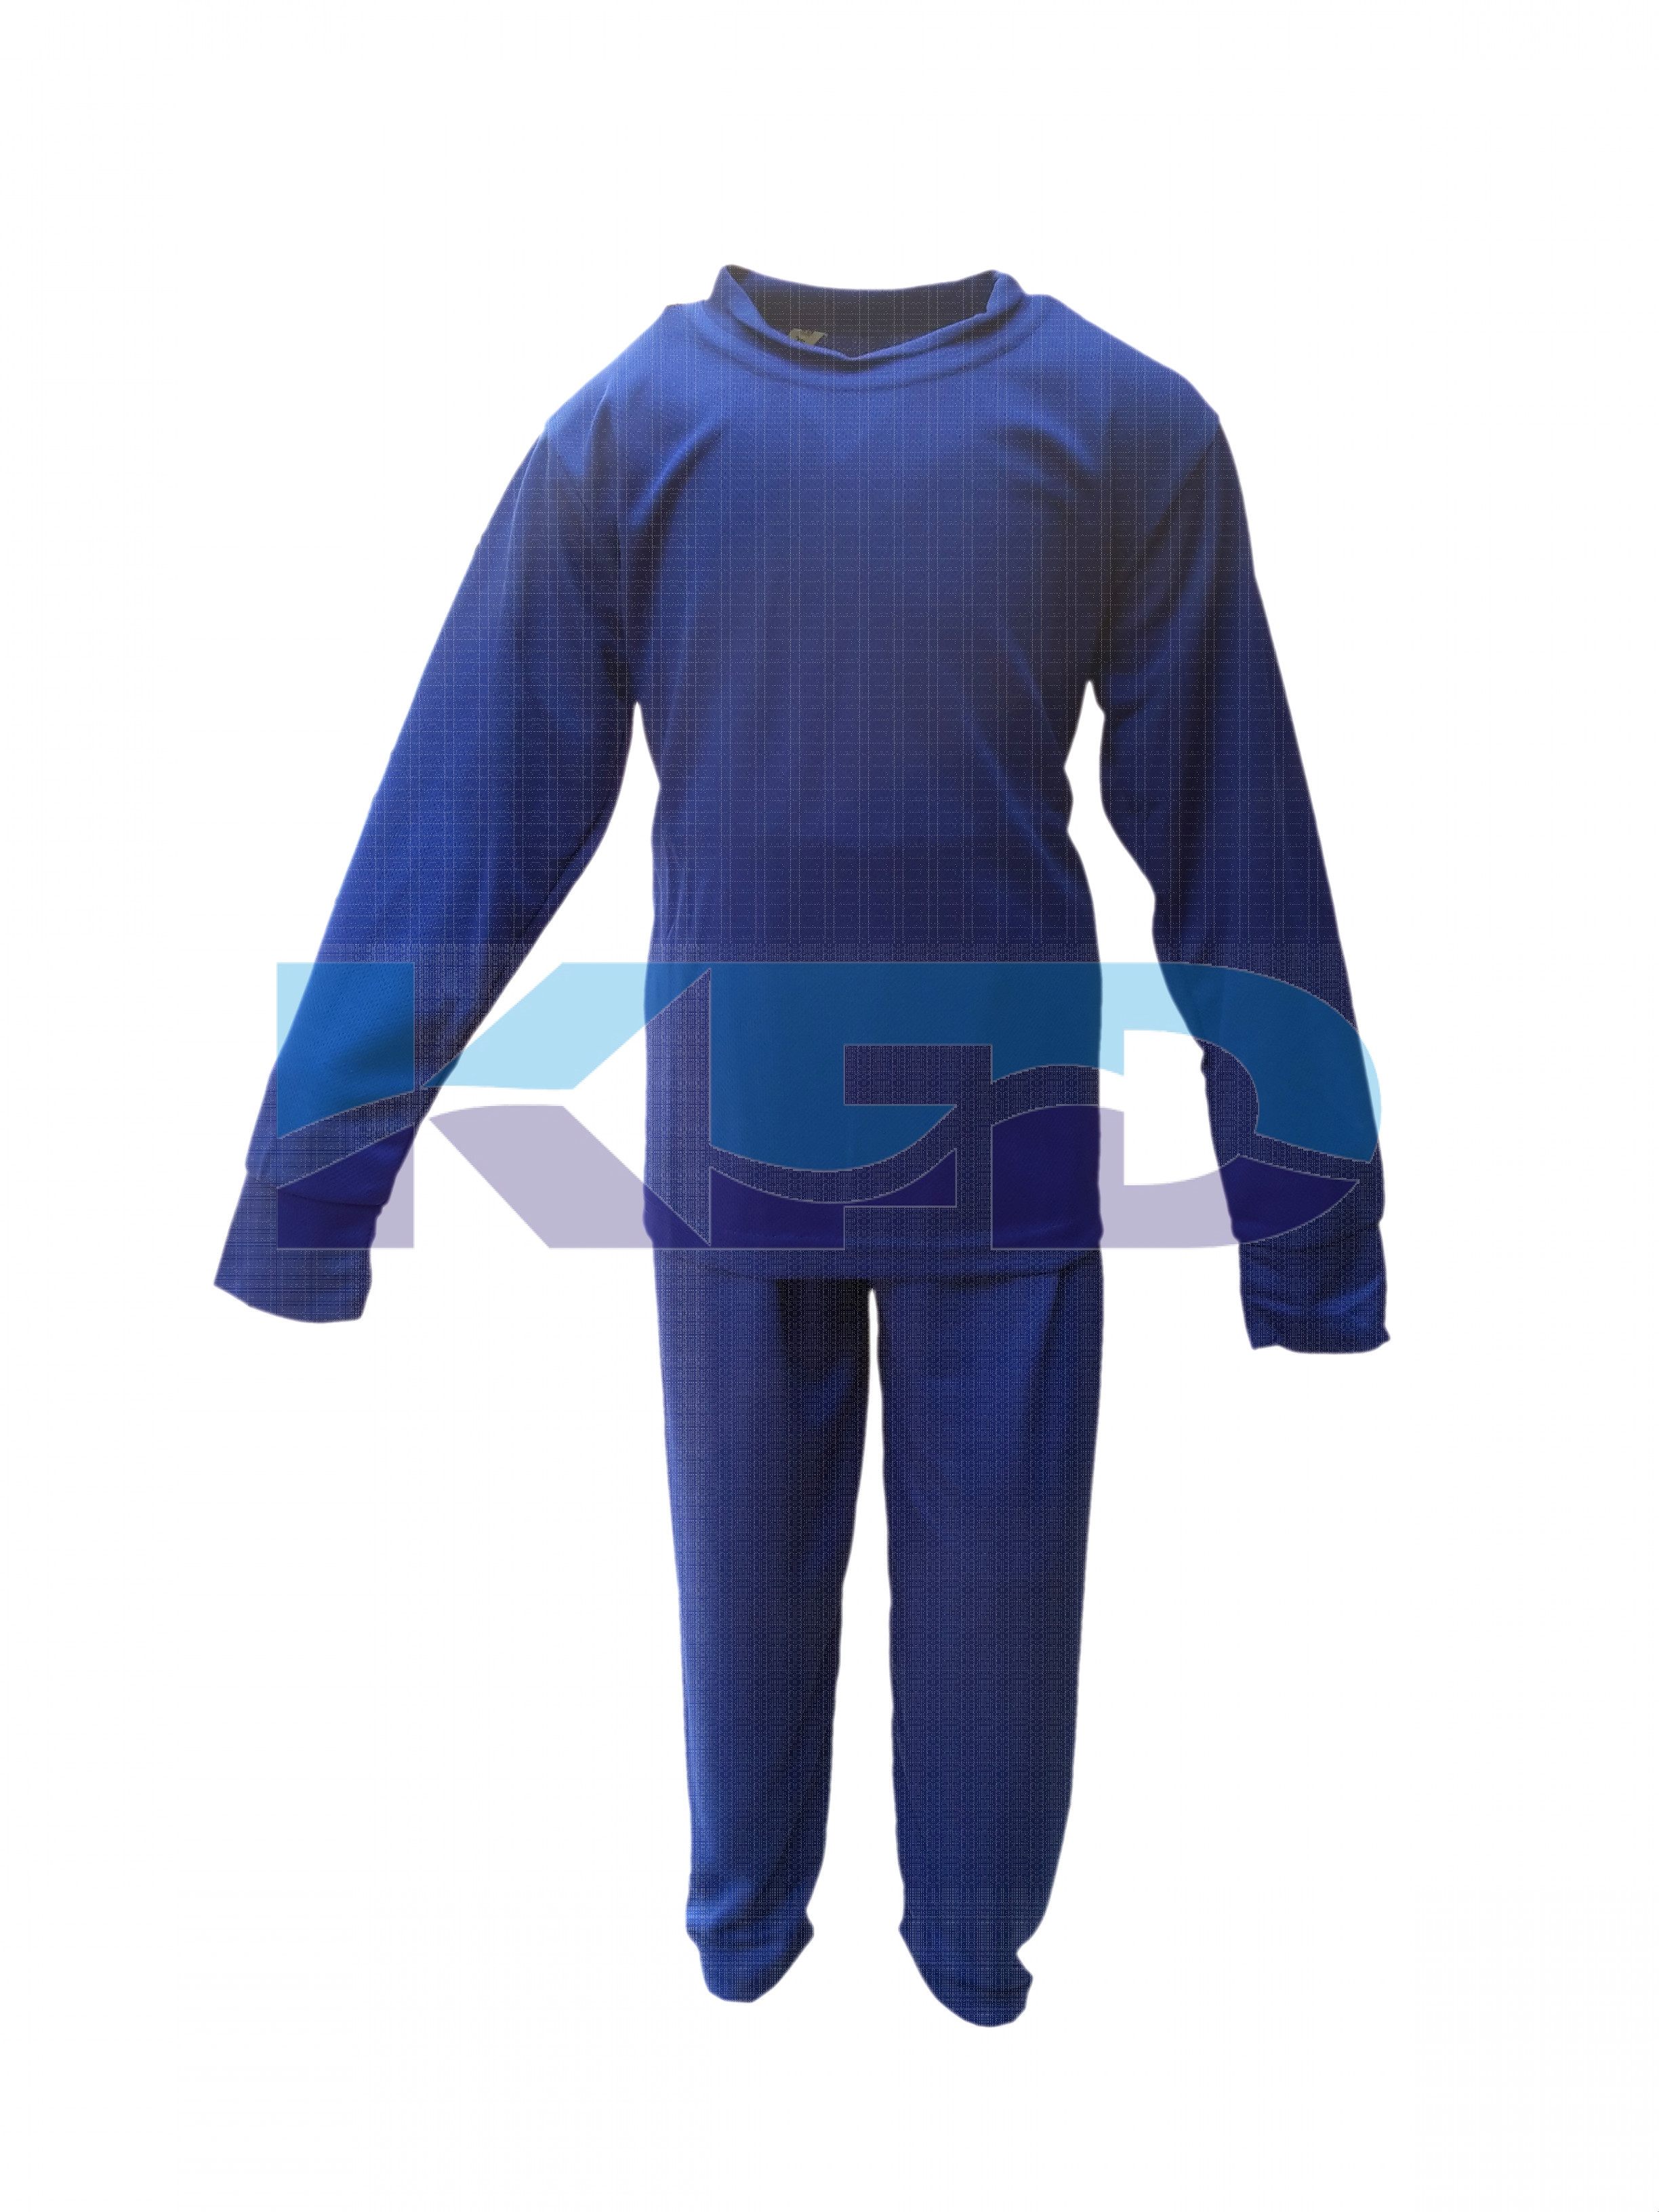 Track Suite Blue Color fancy dress for kids,Costume for School Annual function/Theme Party/Competition/Stage Shows/Birthday Party Dress